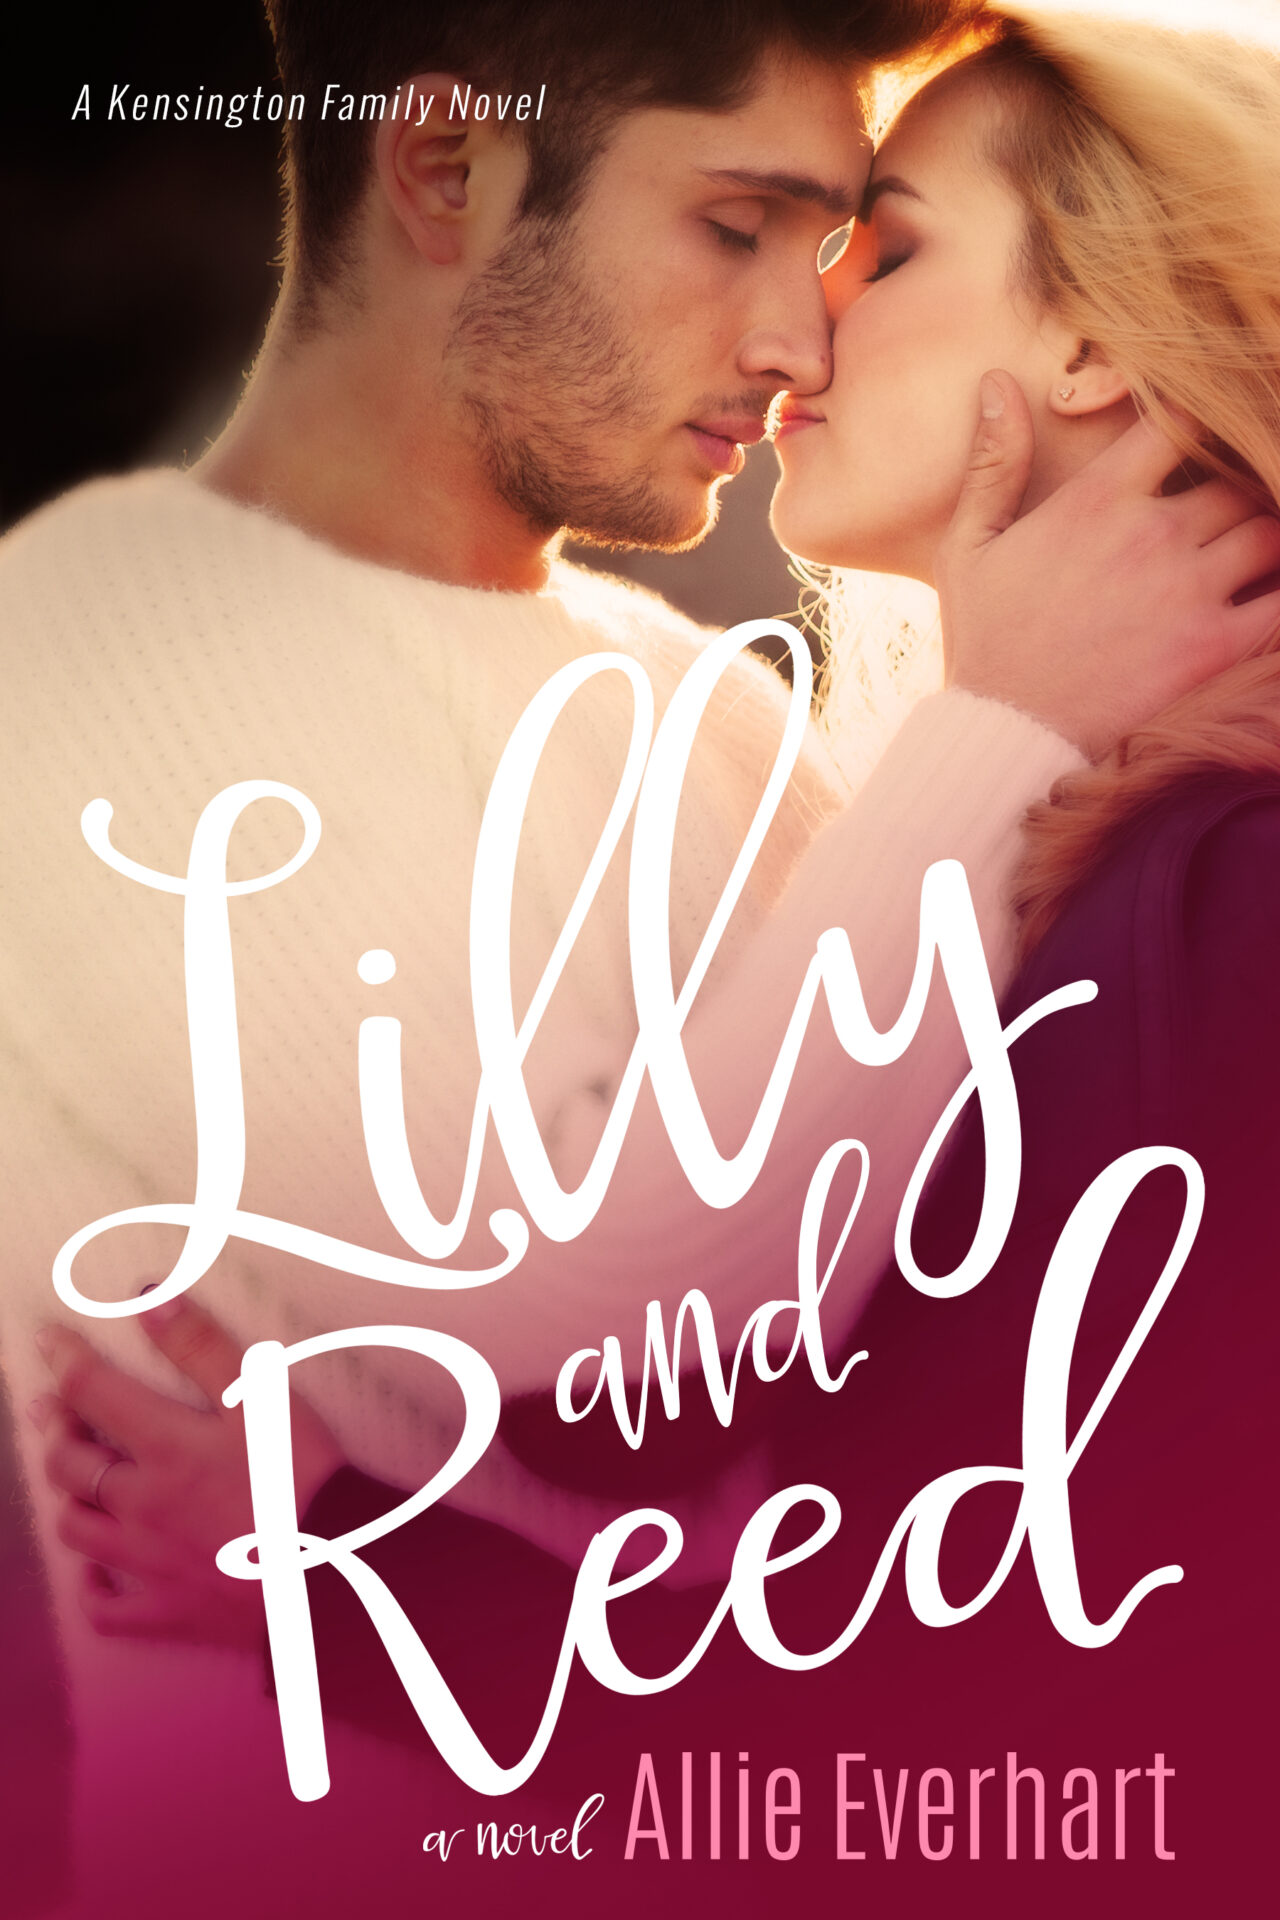 Lilly and Reed